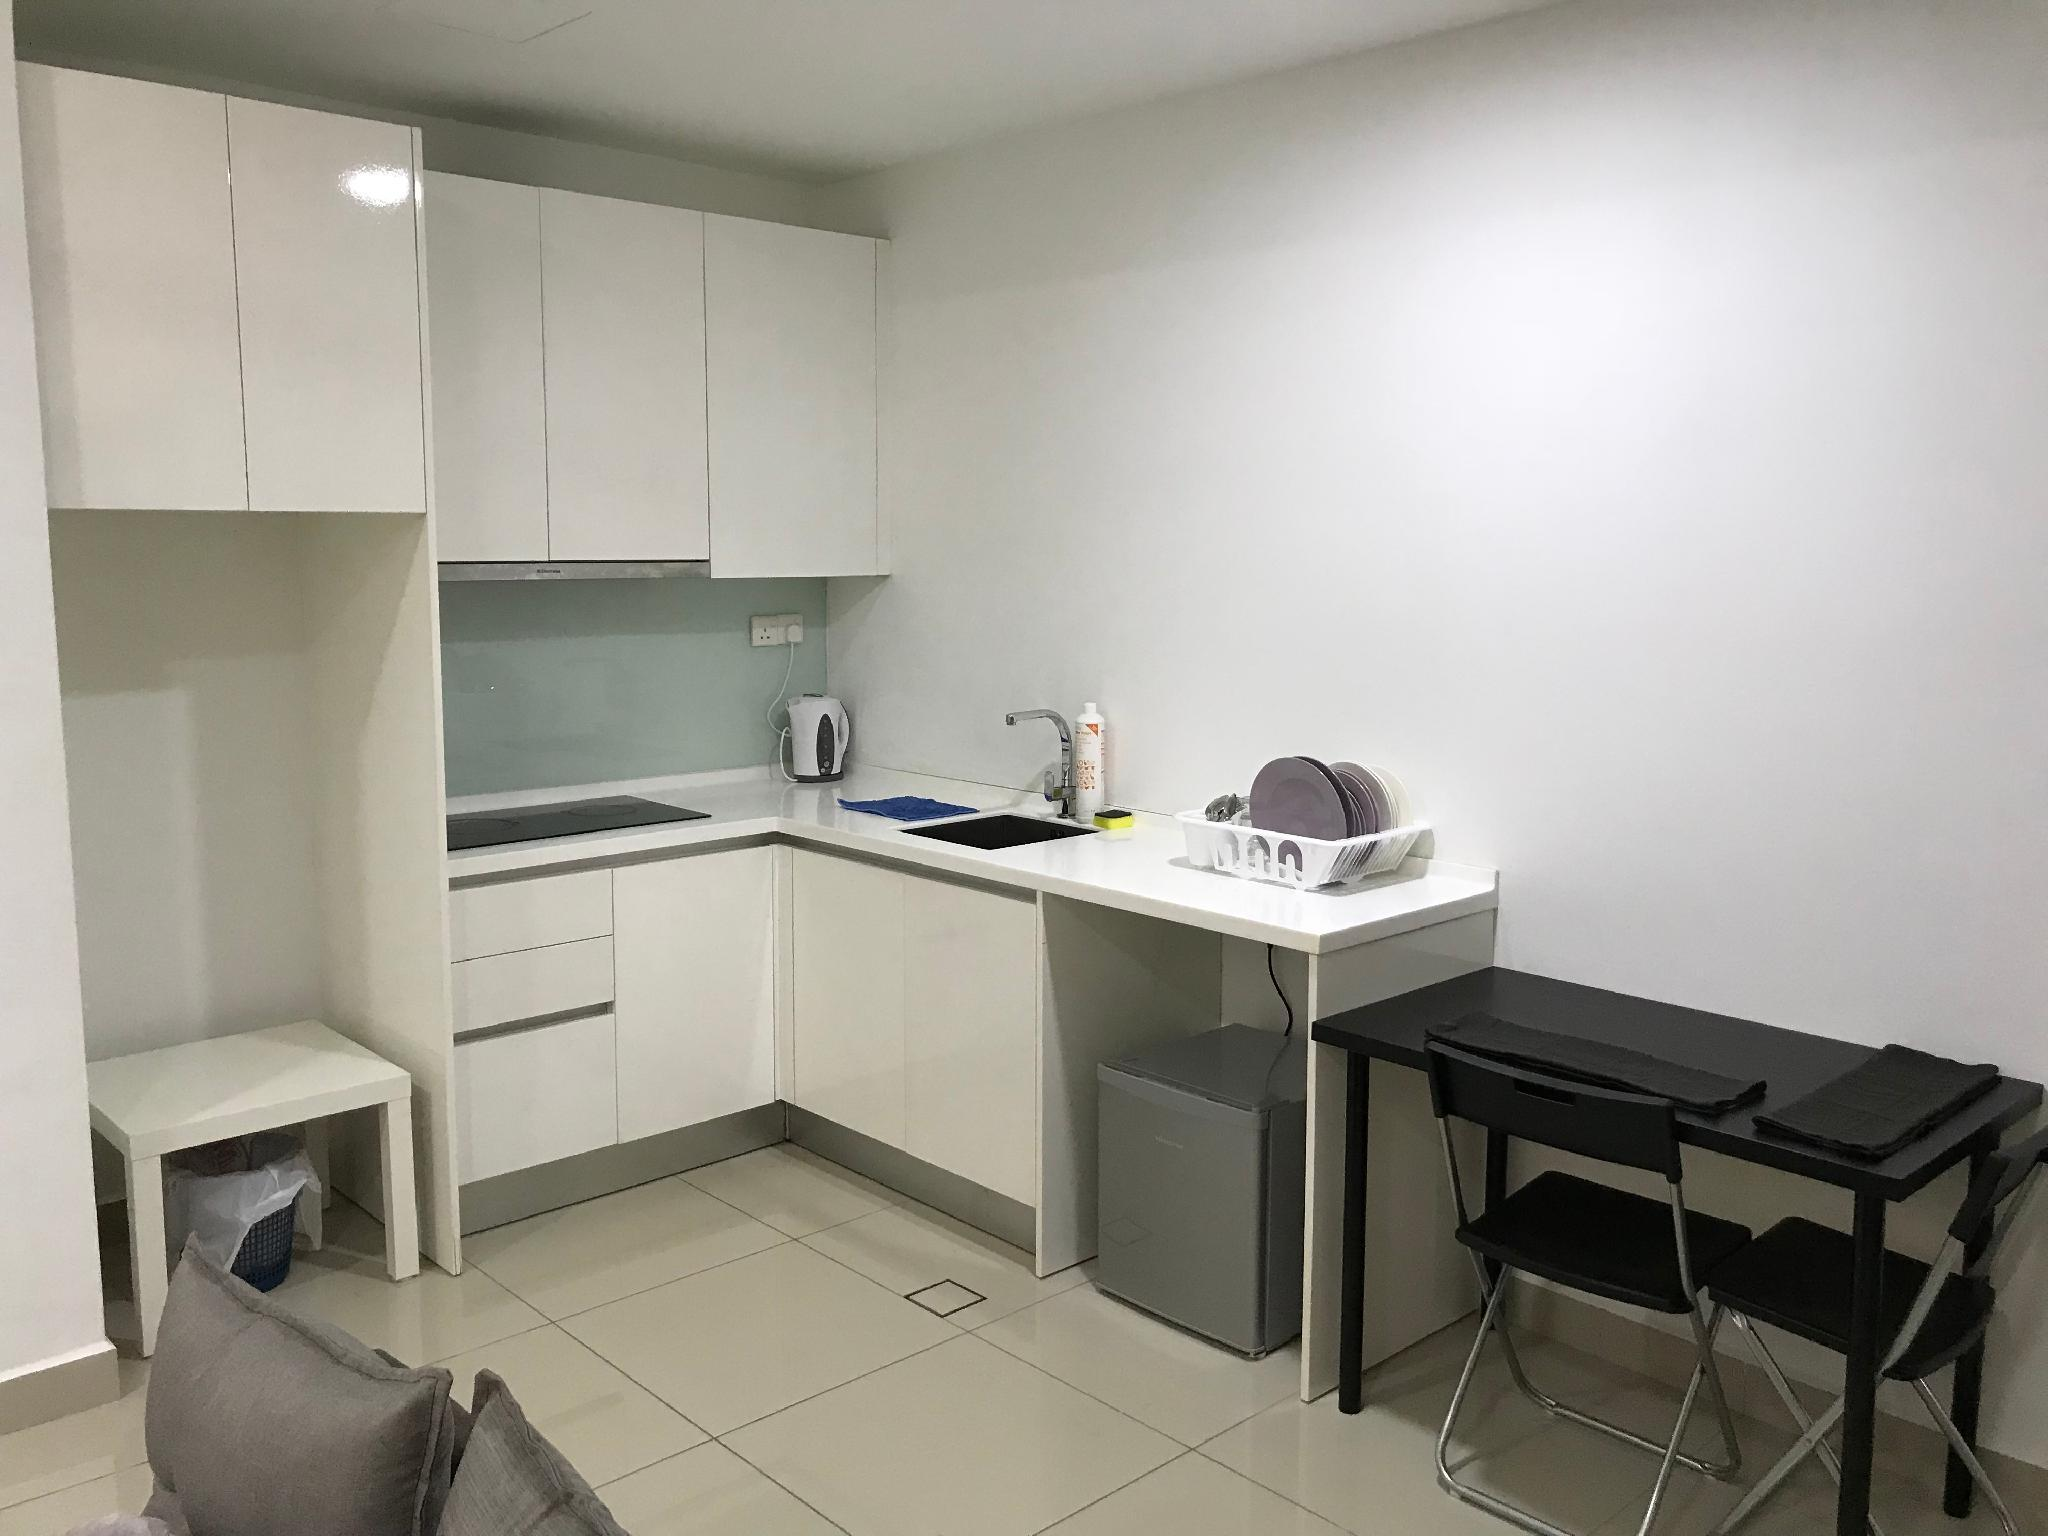 Studio Appartement Tropez Residence Danga Bay Studio Apartment Johor Bahru Room